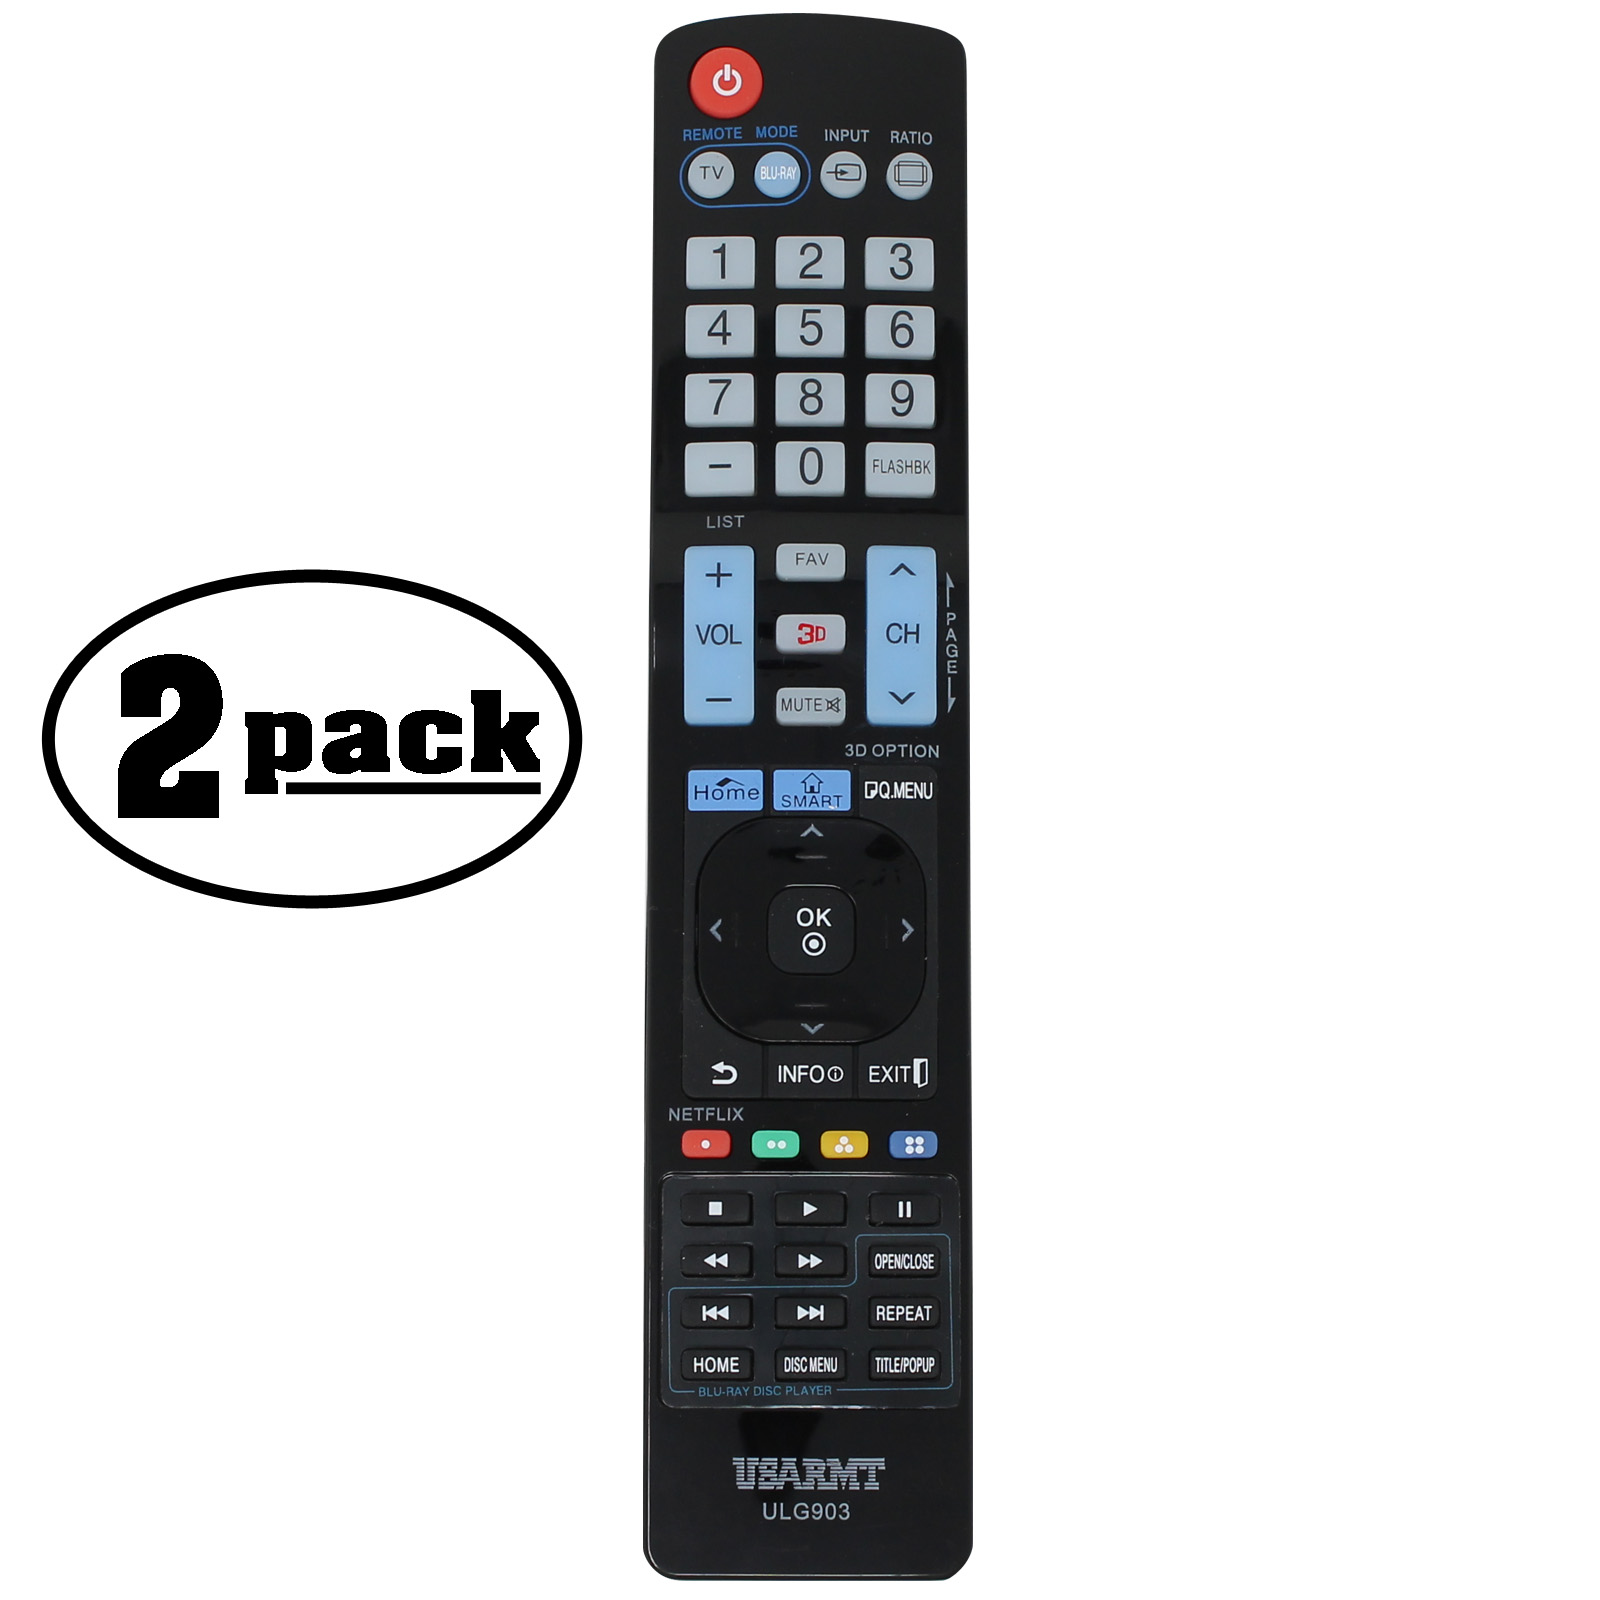 2-Pack Replacement 32LC5DCB TV Remote Control for LG TV - Compatible with AGF76692608 LG TV Remote Control - image 3 de 3